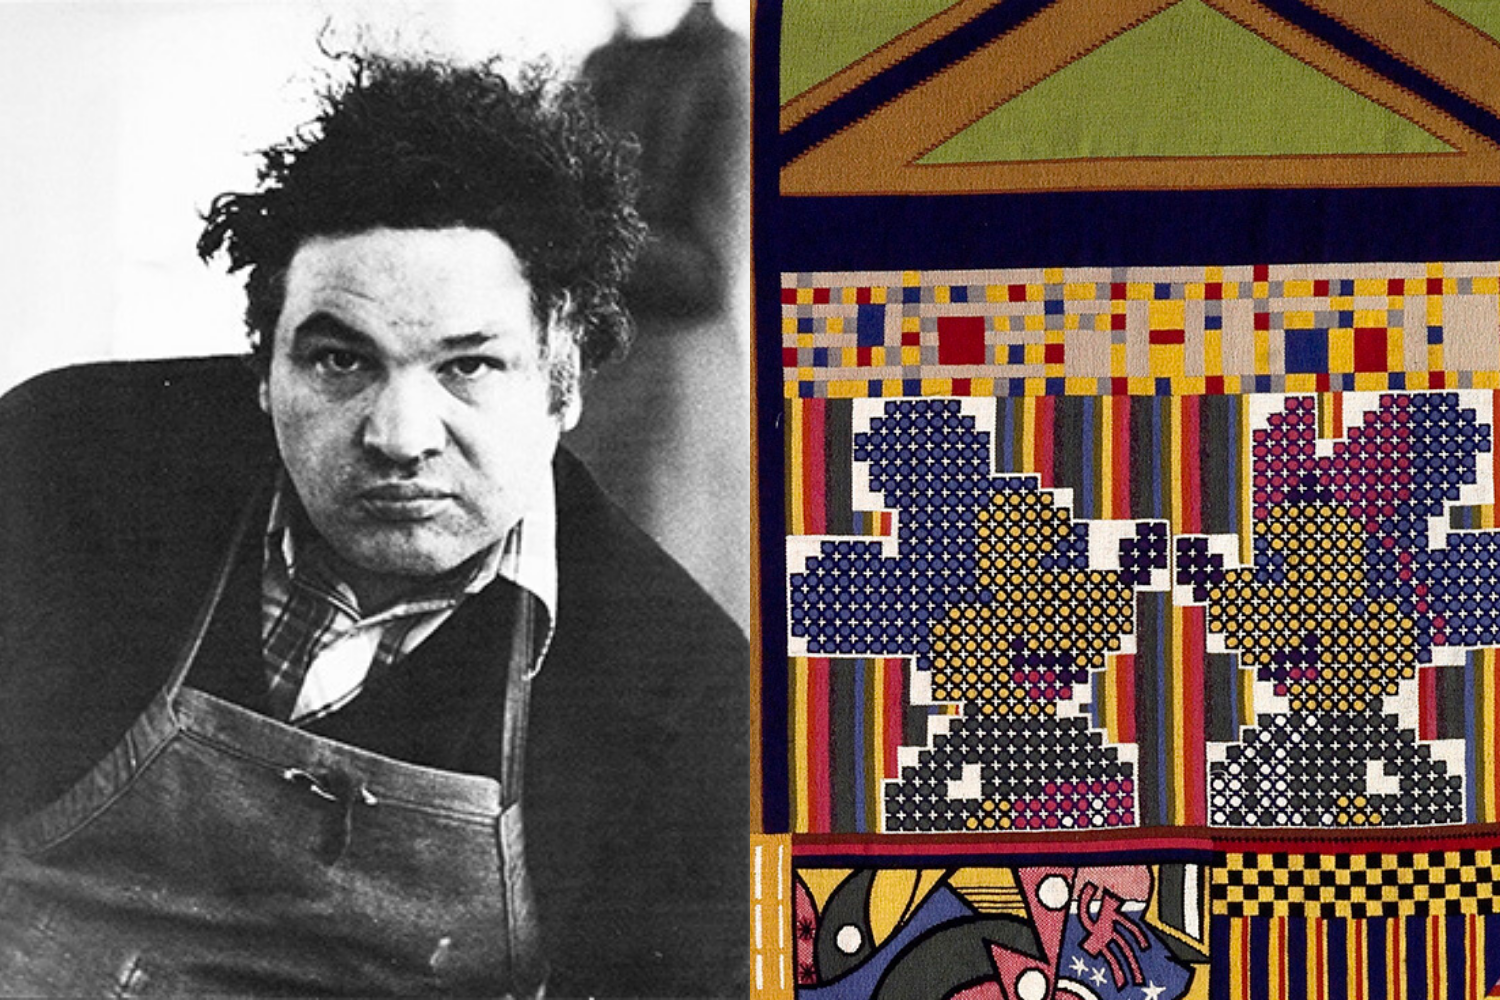 POSTPONED Eduardo Paolozzi: Pop Art & Design